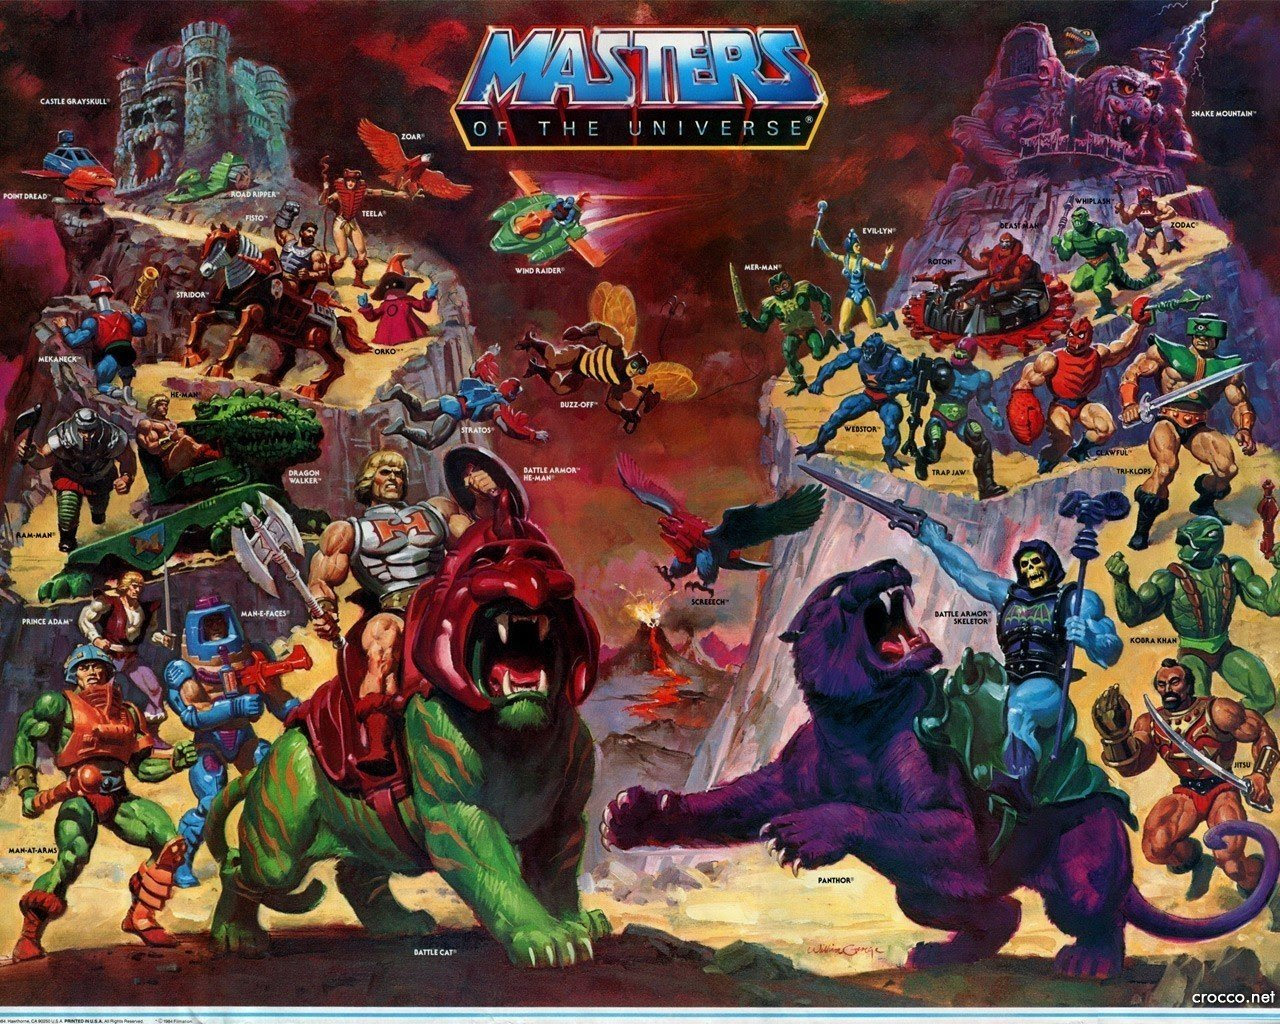 http://www.mangaforever.net/wp-content/uploads/2014/02/Masters-of-the-Universe.jpg